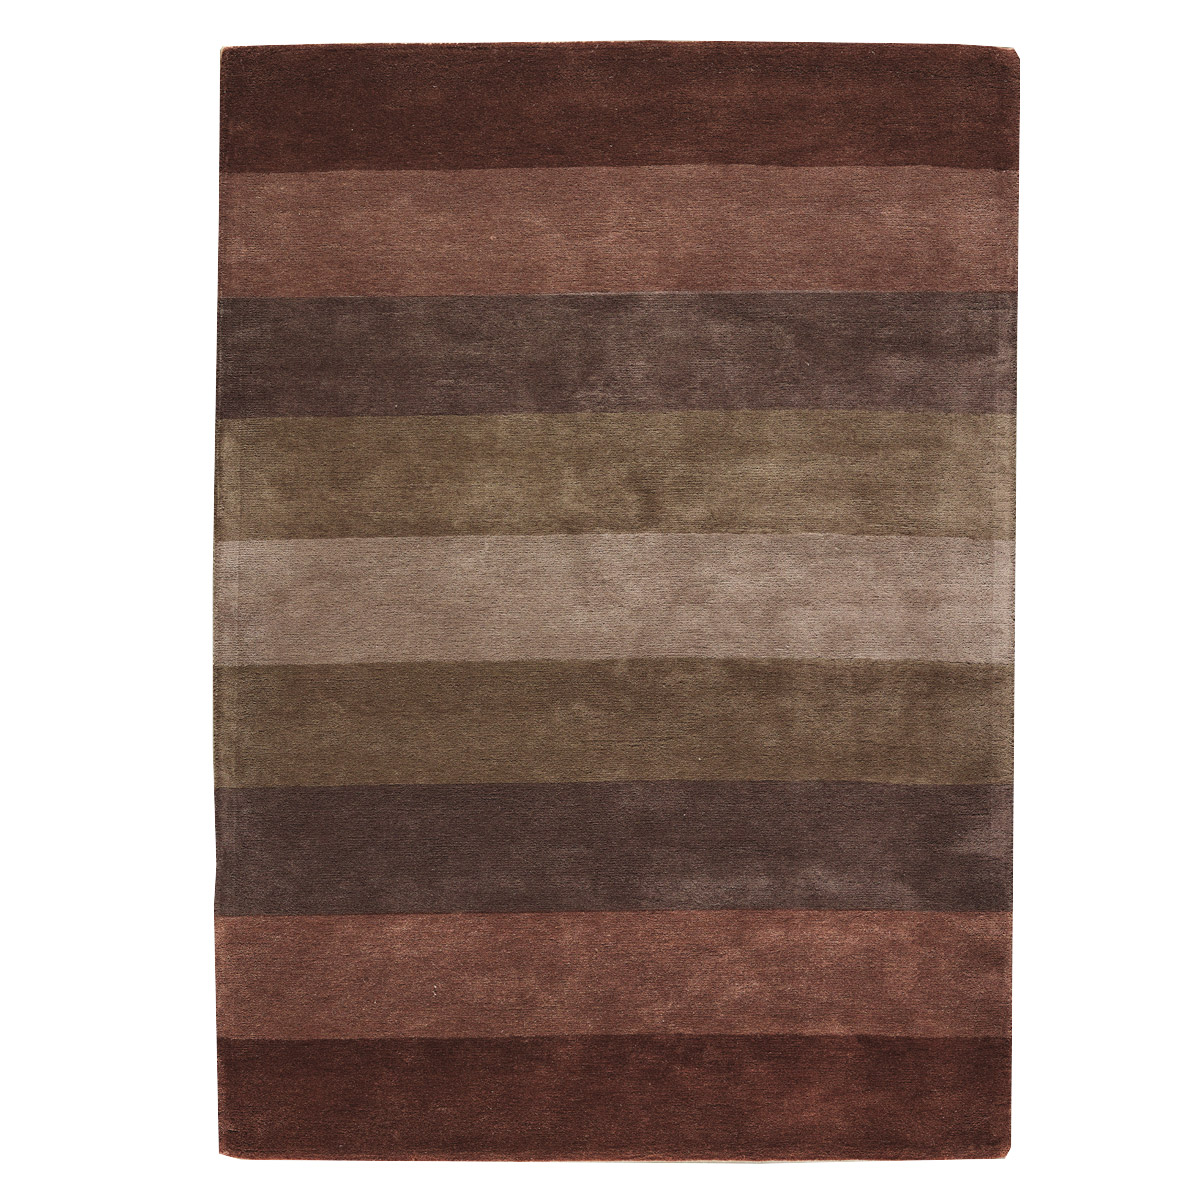 Tapis salon marron chocolat Beaux tapis contemporains